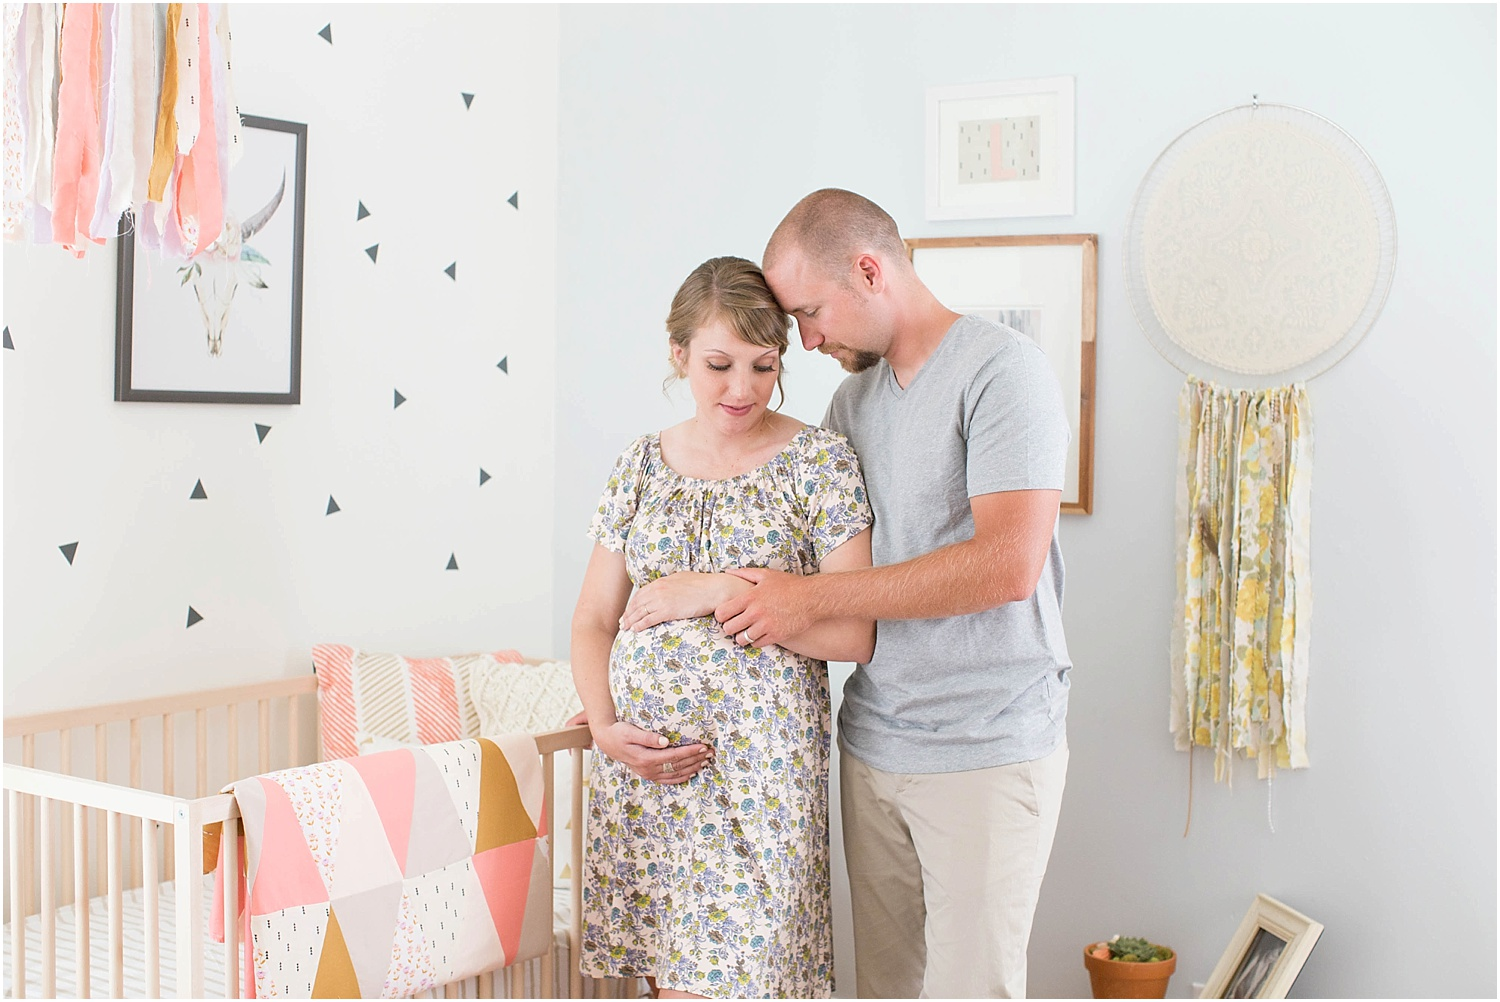 Ashley Powell Photography | Styled Maternity Session | Roanoke, VA Photographer